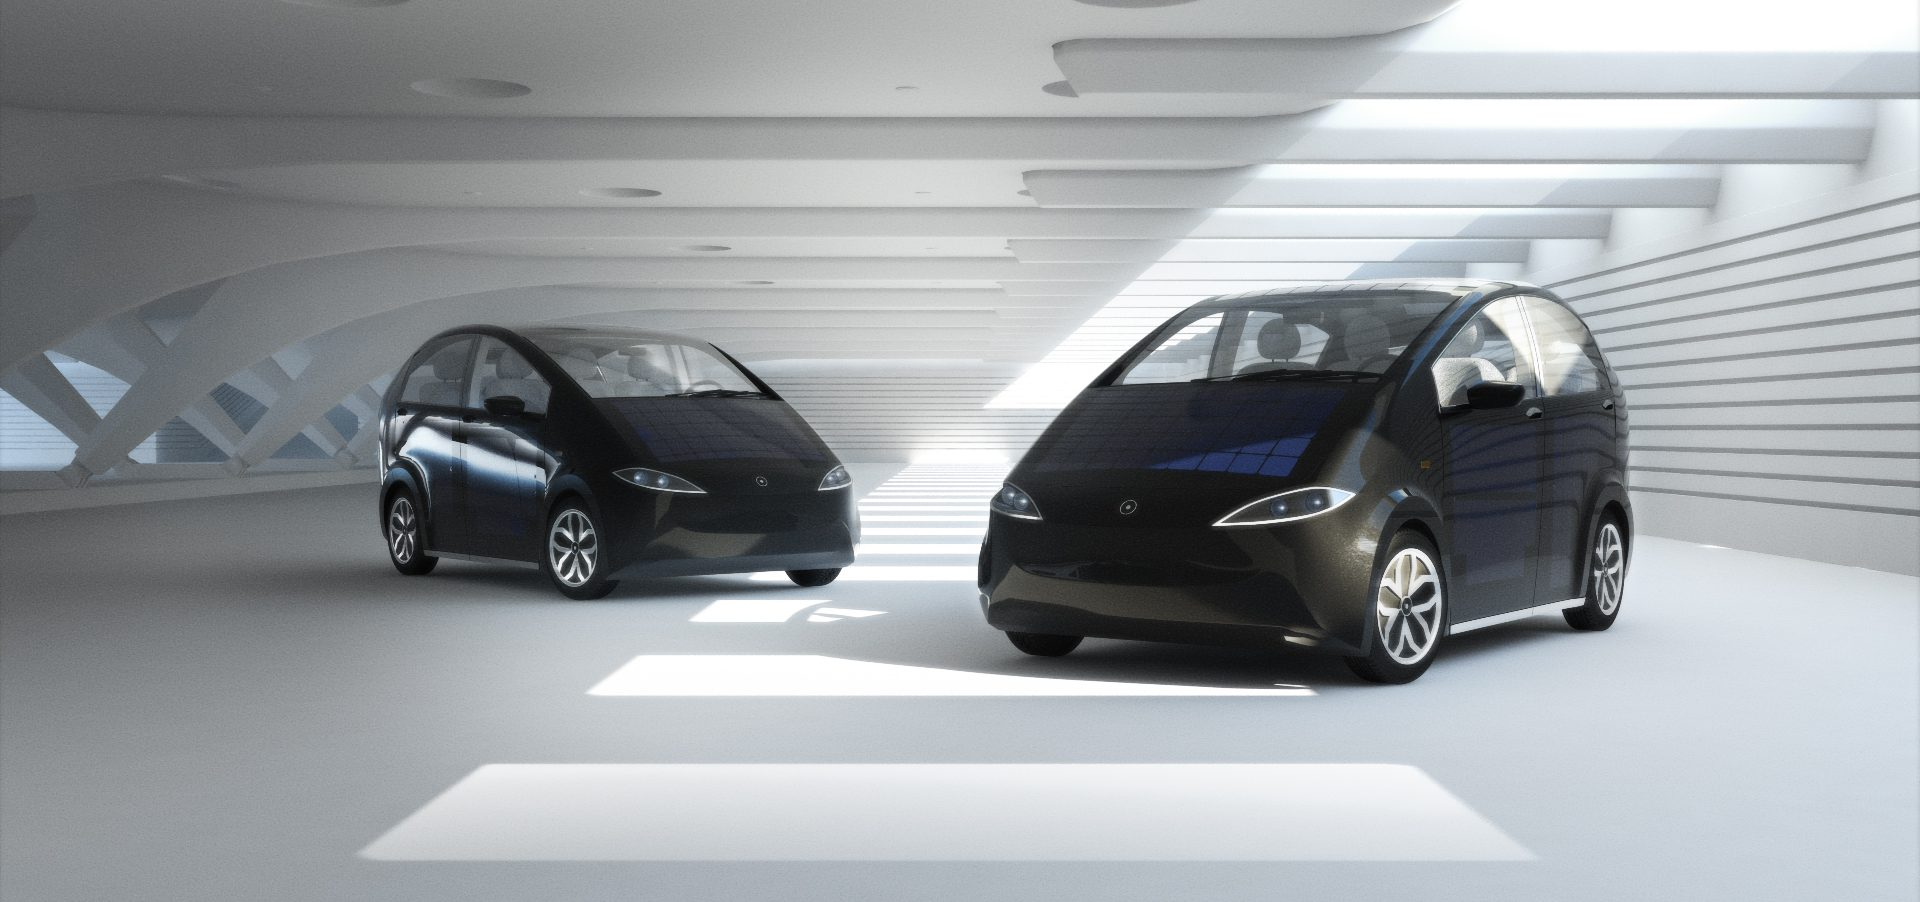 Garage Honda Sion All Electric And Solar Powered Car Successfully Crowdfunded Sono